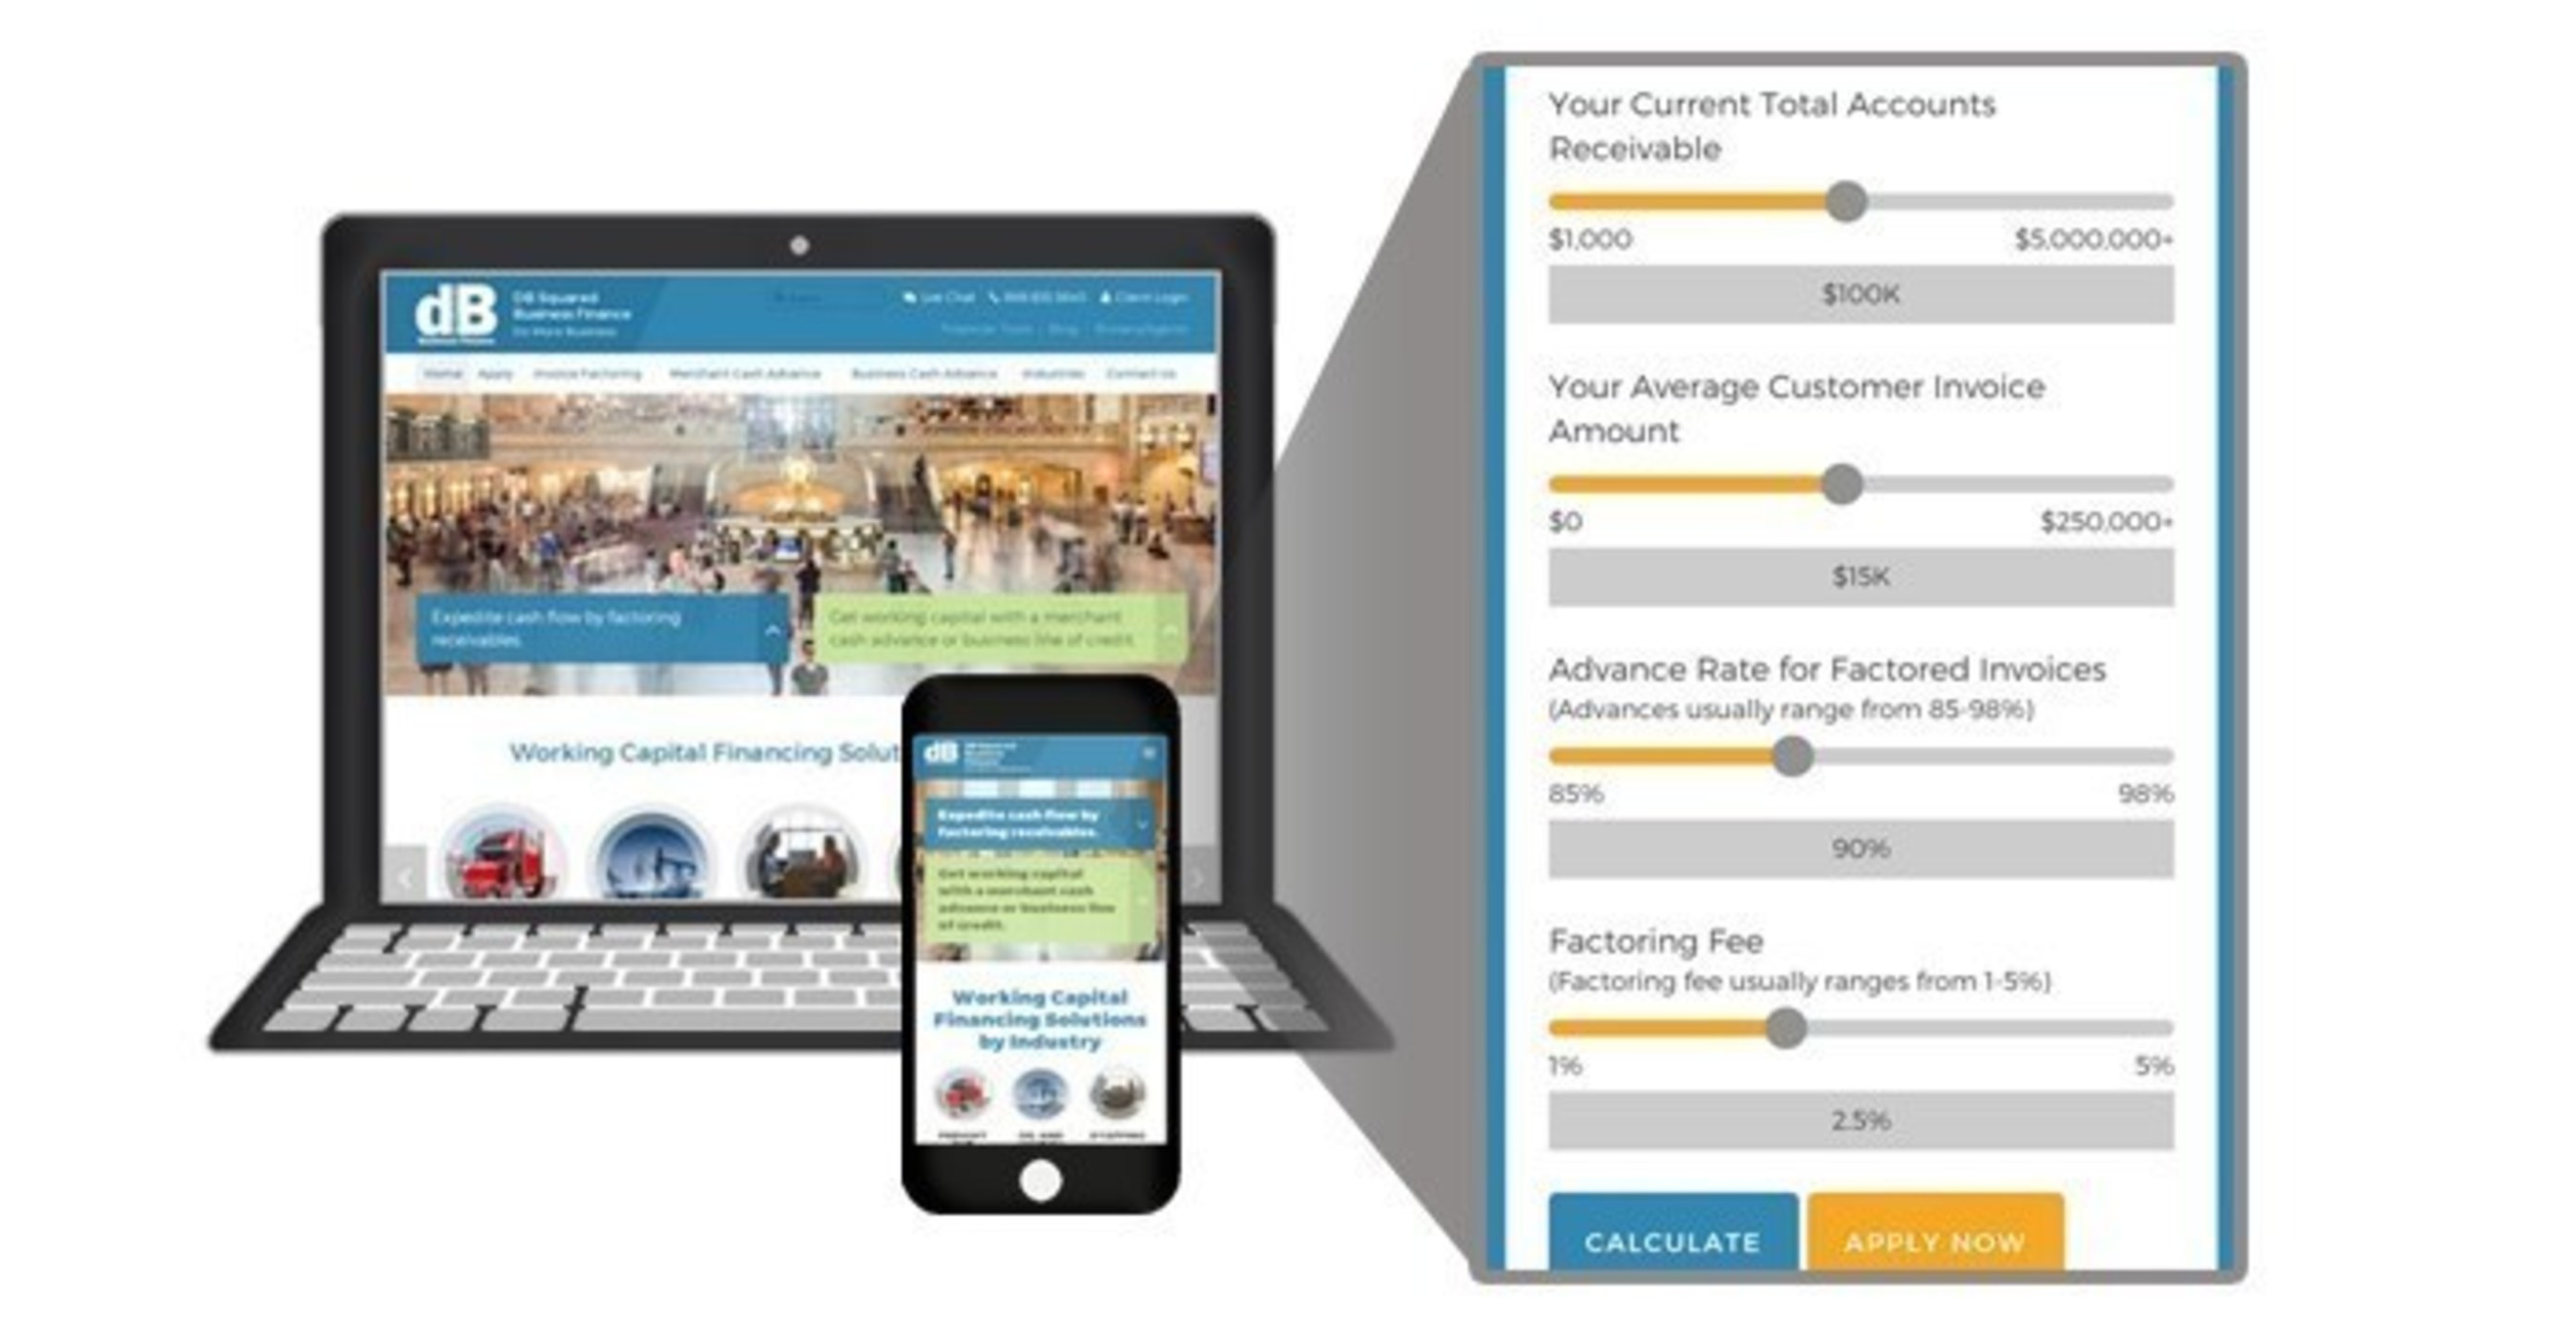 DB Squared Announces Business Finance Site Redesign